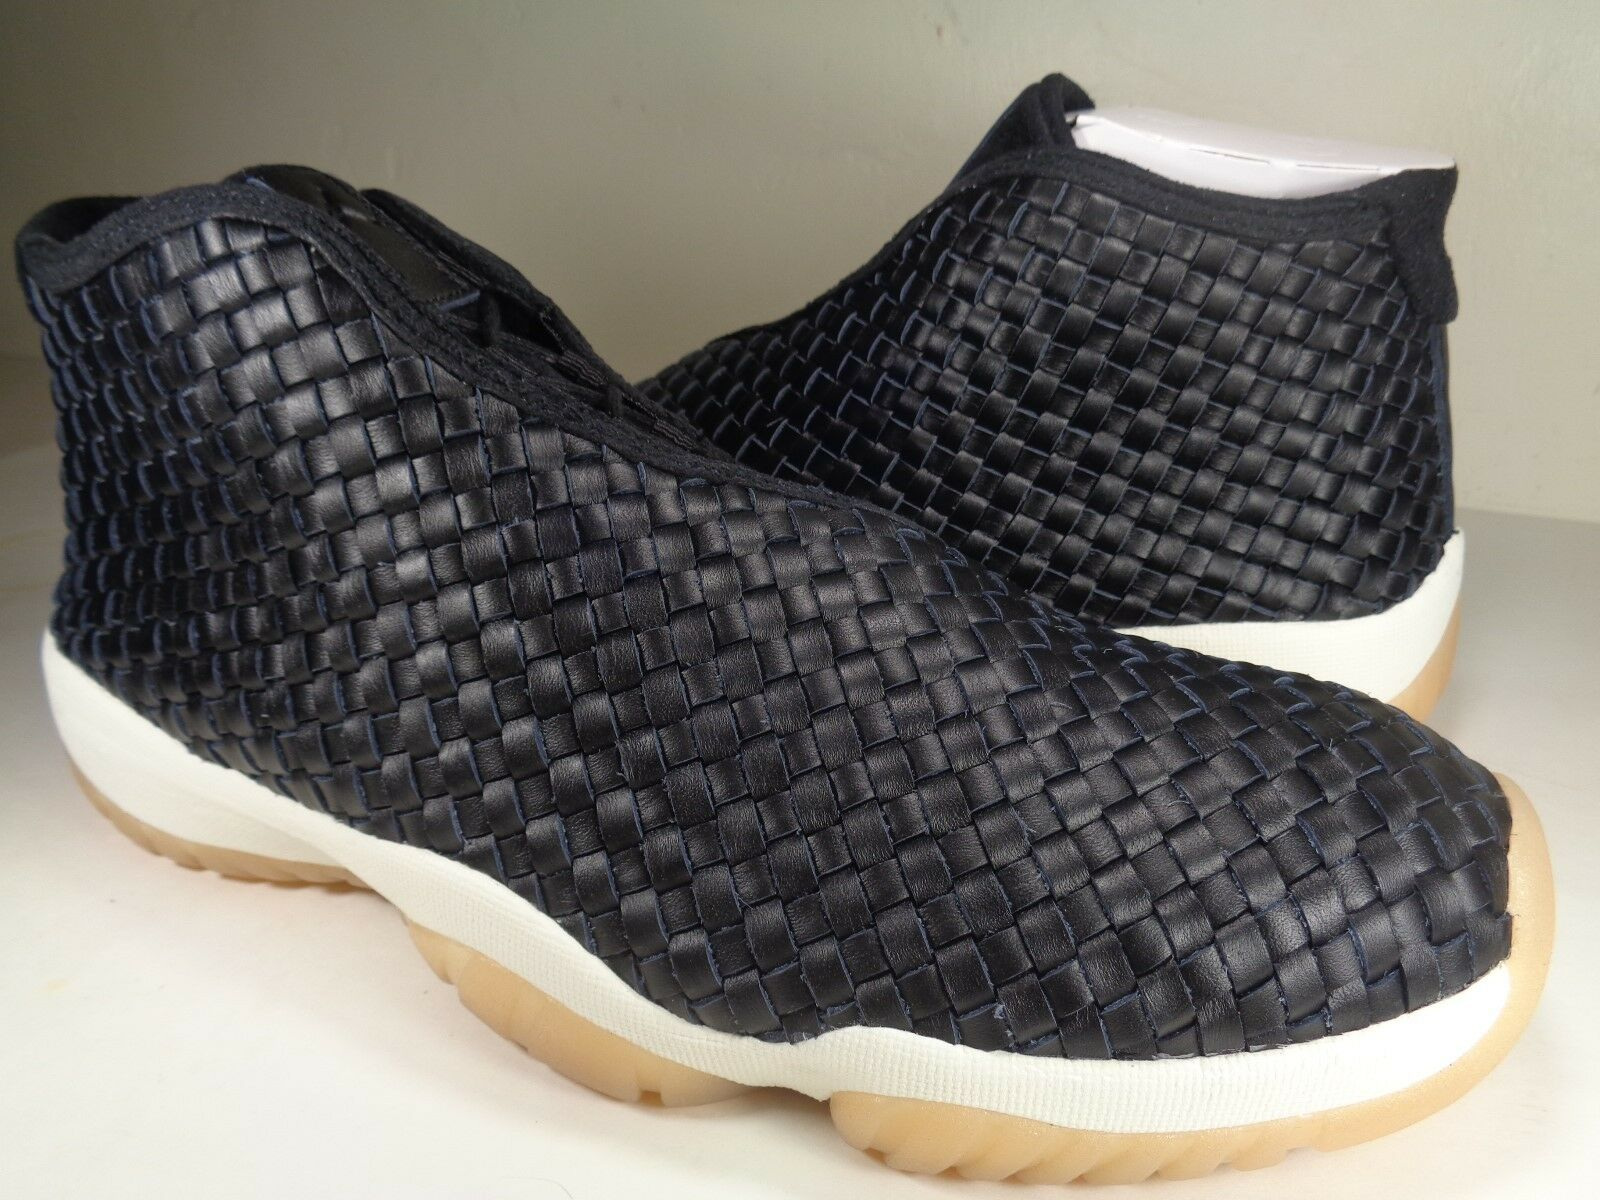 5f5a2661891 Nike Air Future Premium Black Sail Gum Yellow SZ 13 (652141-019) Jordan  noicoi2433-Athletic Shoes